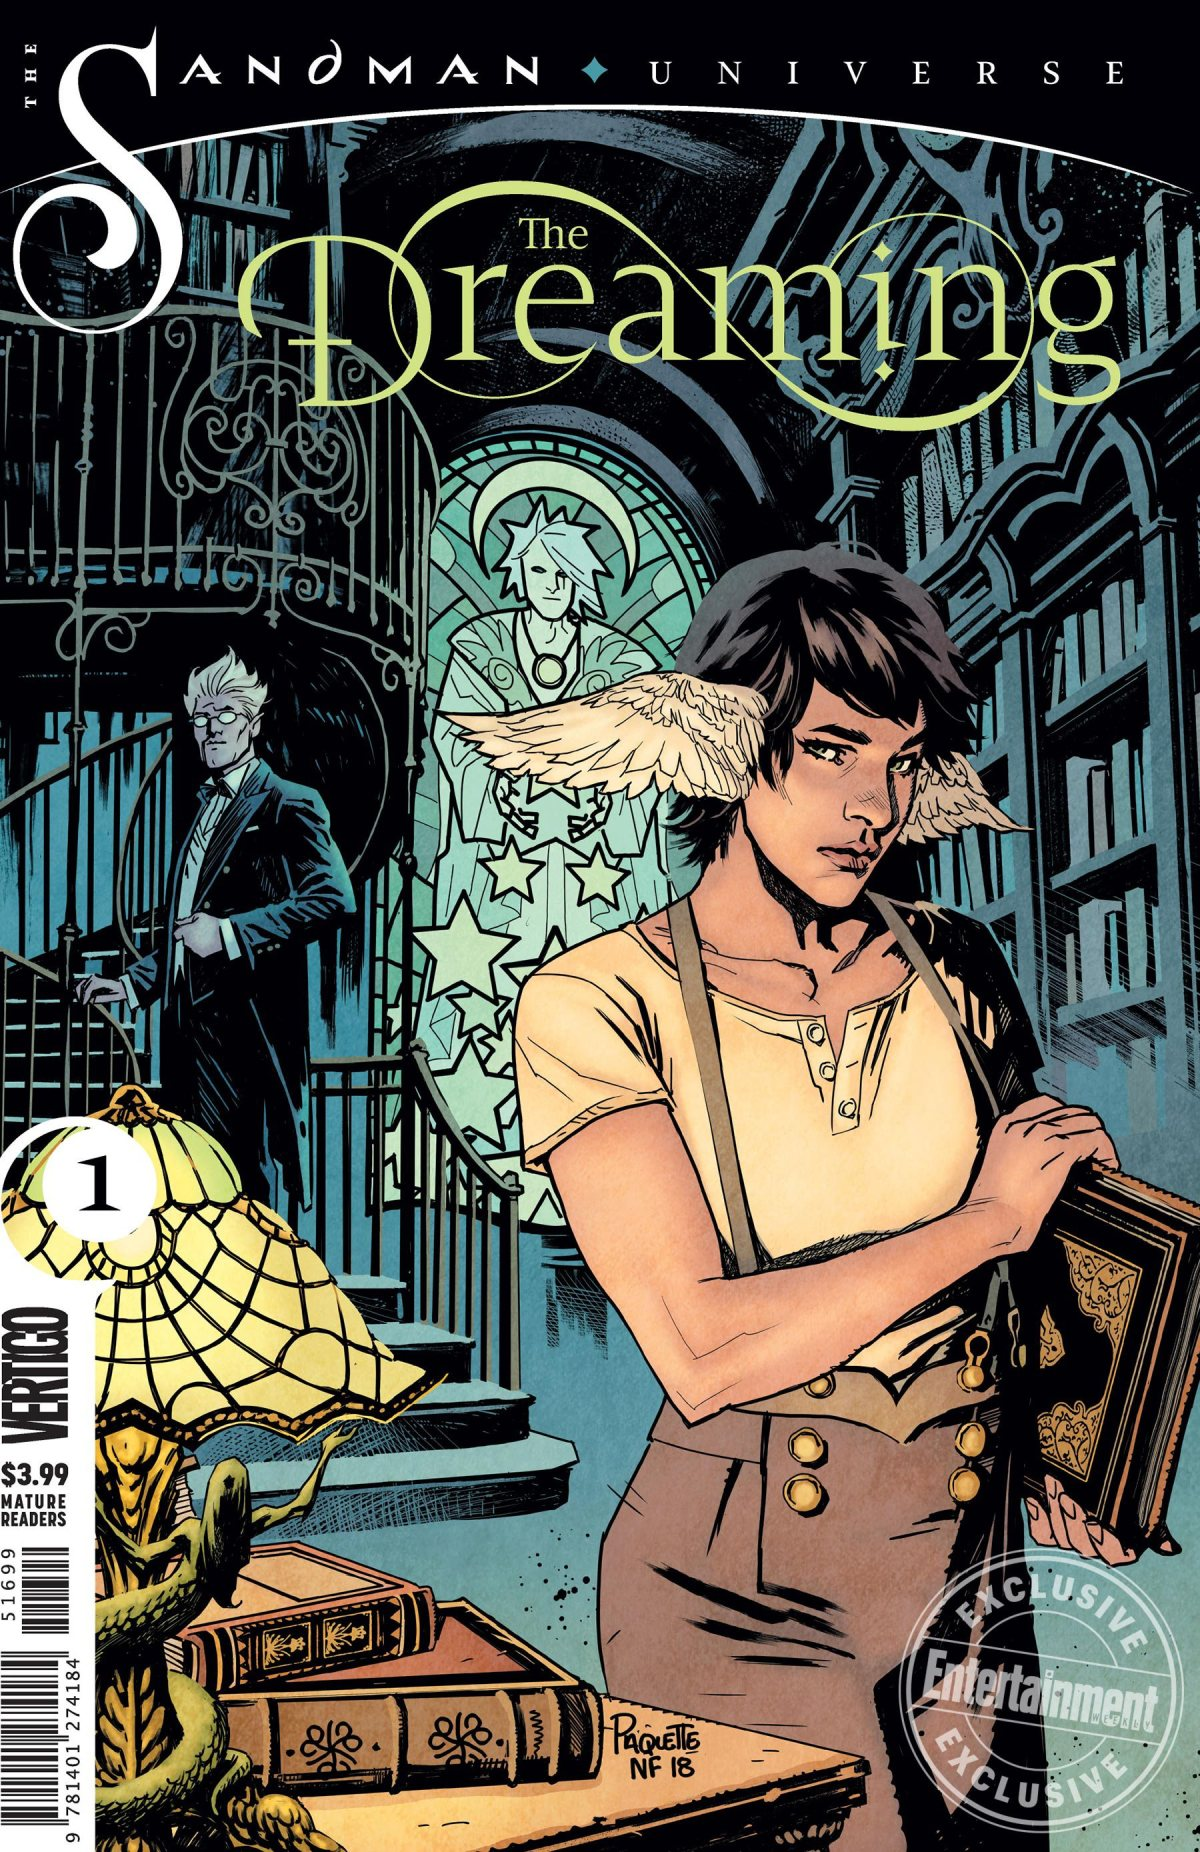 The Dreaming 2018 issue #1recap